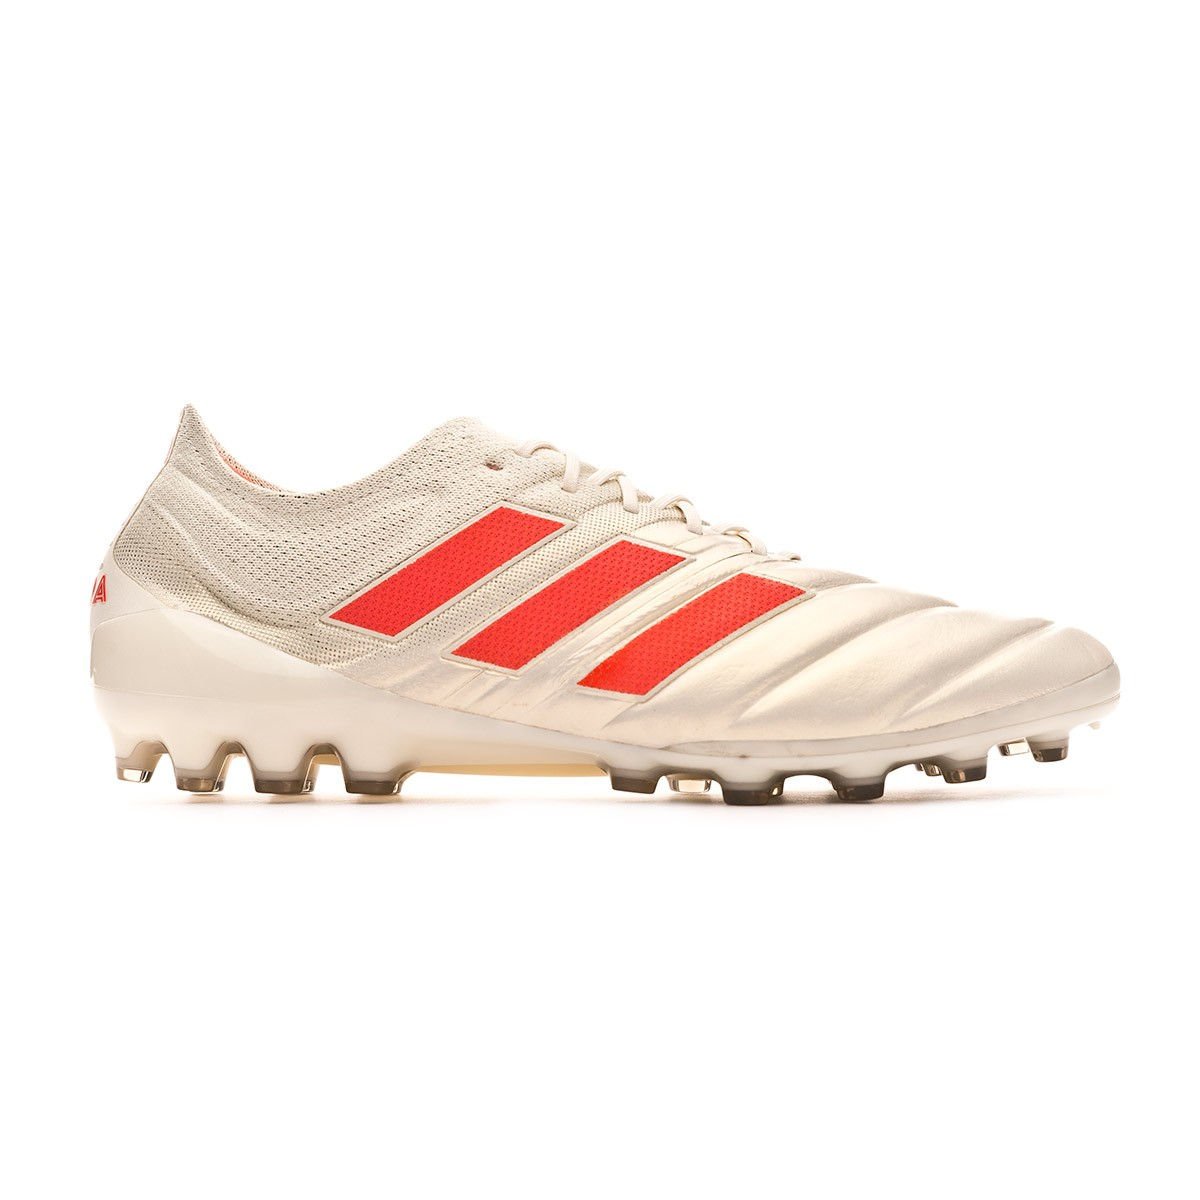 timeless design 9caad 5c0a8 Football Boots adidas Copa 19.1 AG Off white-Solar red-Core black -  Football store Fútbol Emotion